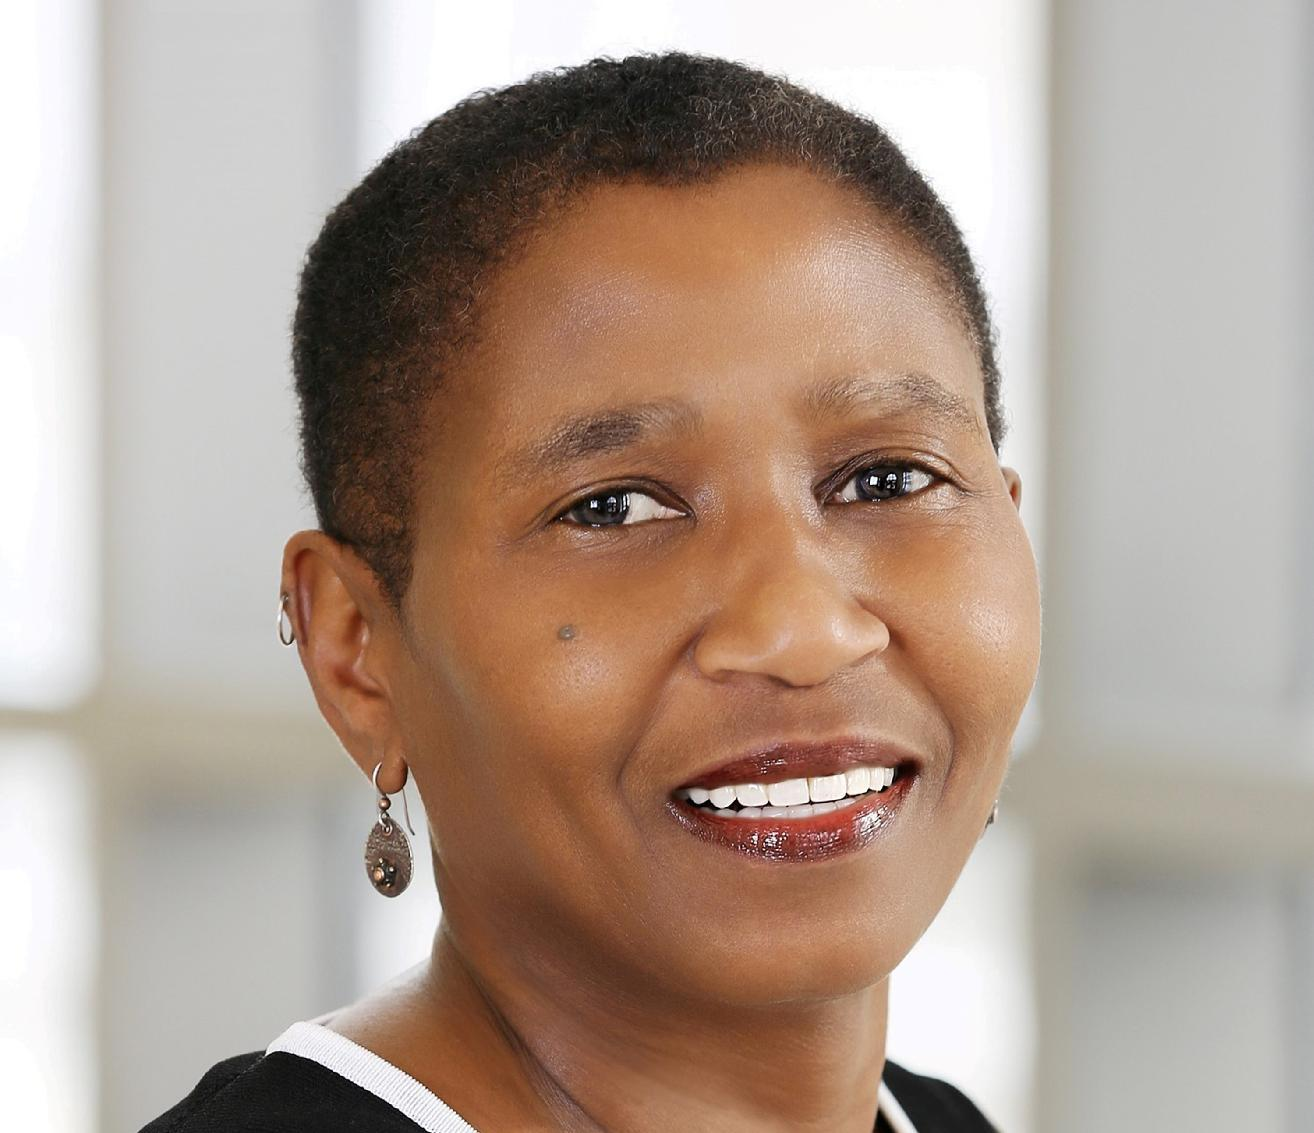 NBPA's Michele Roberts sees no reason for 2017 work stoppage, warns NBA against 'cry of poverty'